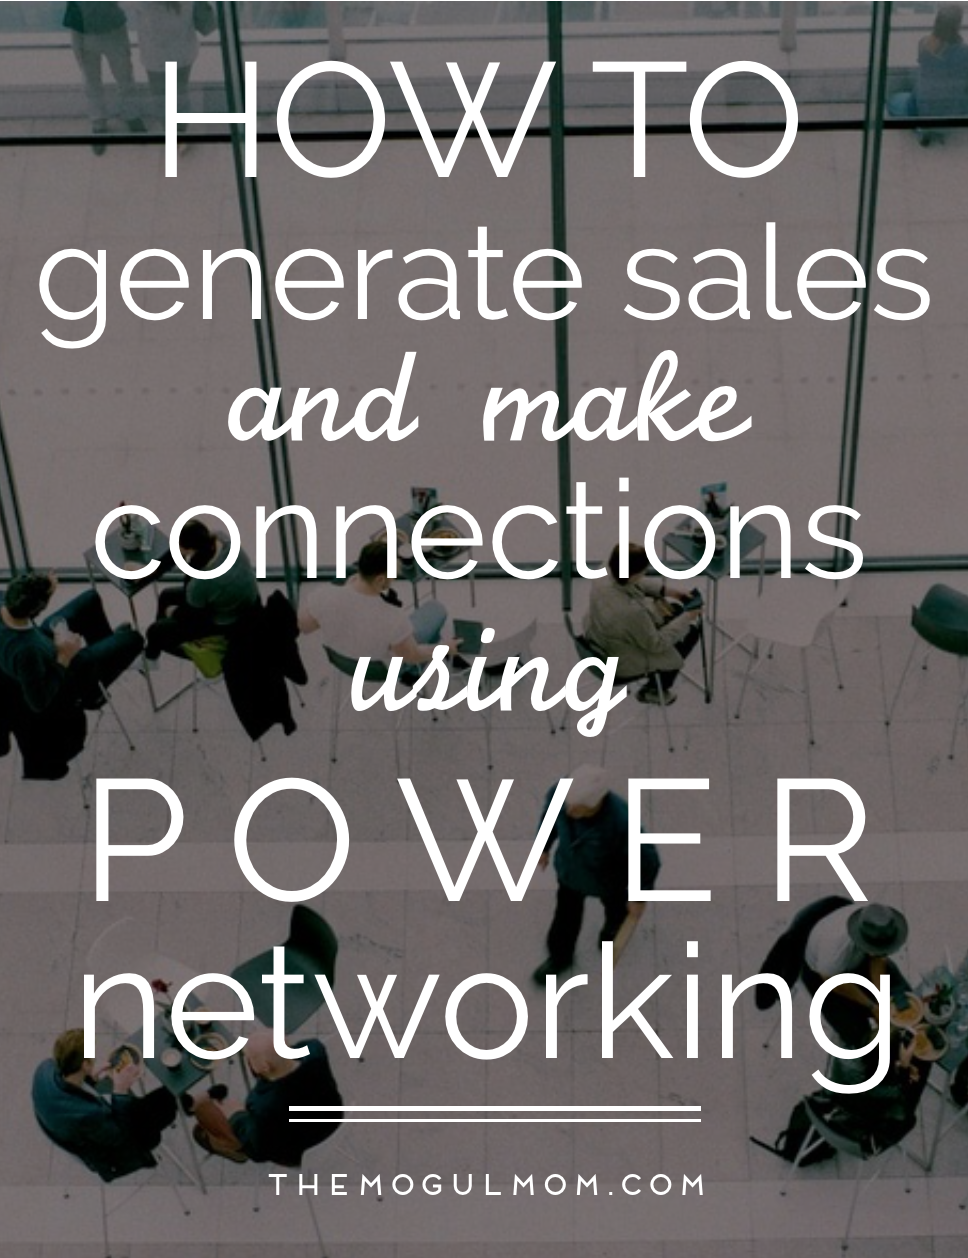 power networking how to network effectively to generate sales and make relevant connections